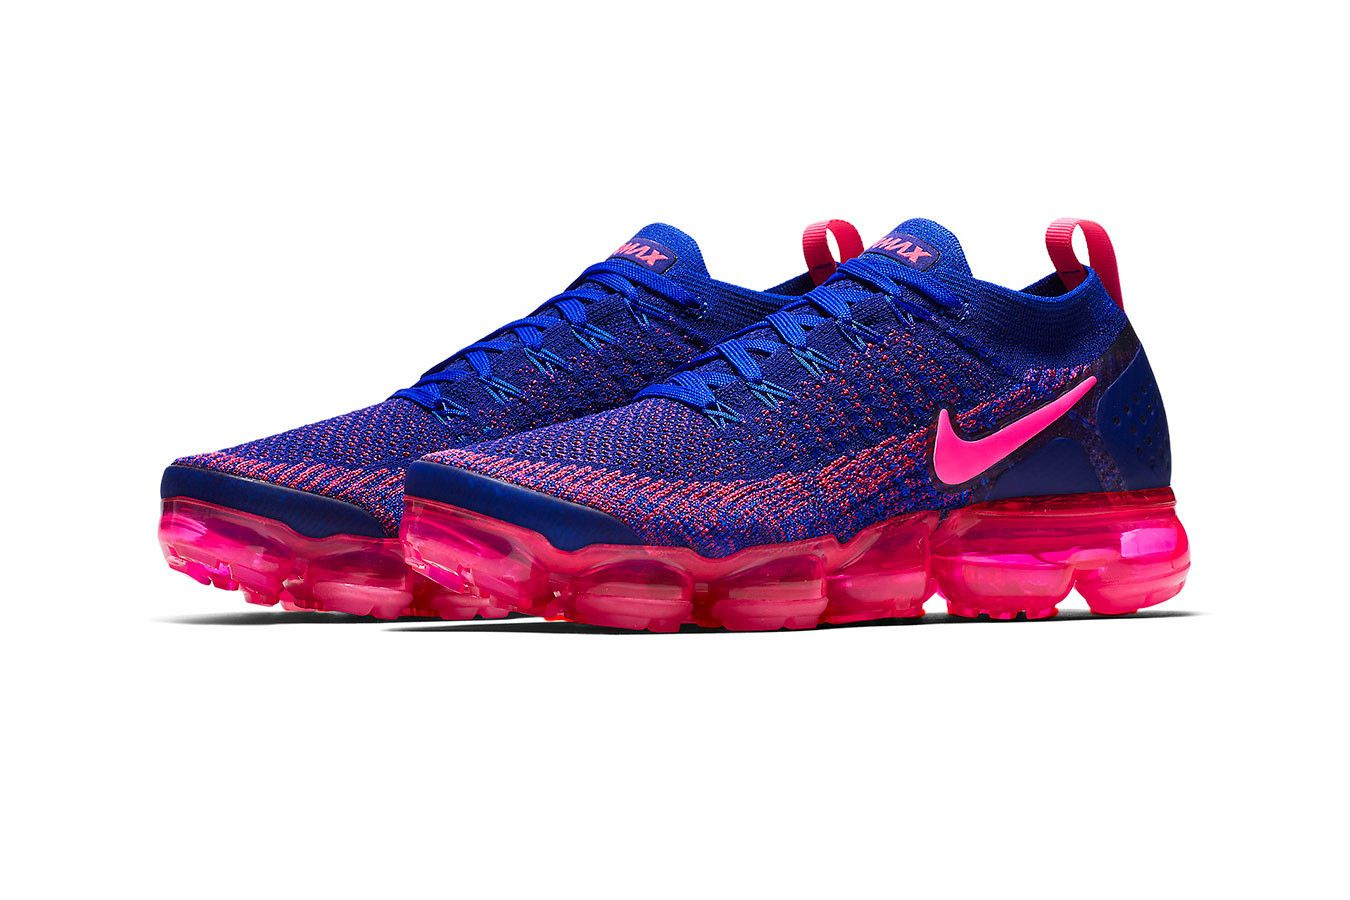 online store ac282 d0030 Neon Pink Pops on Nike's Air VaporMax Flyknit 2.0